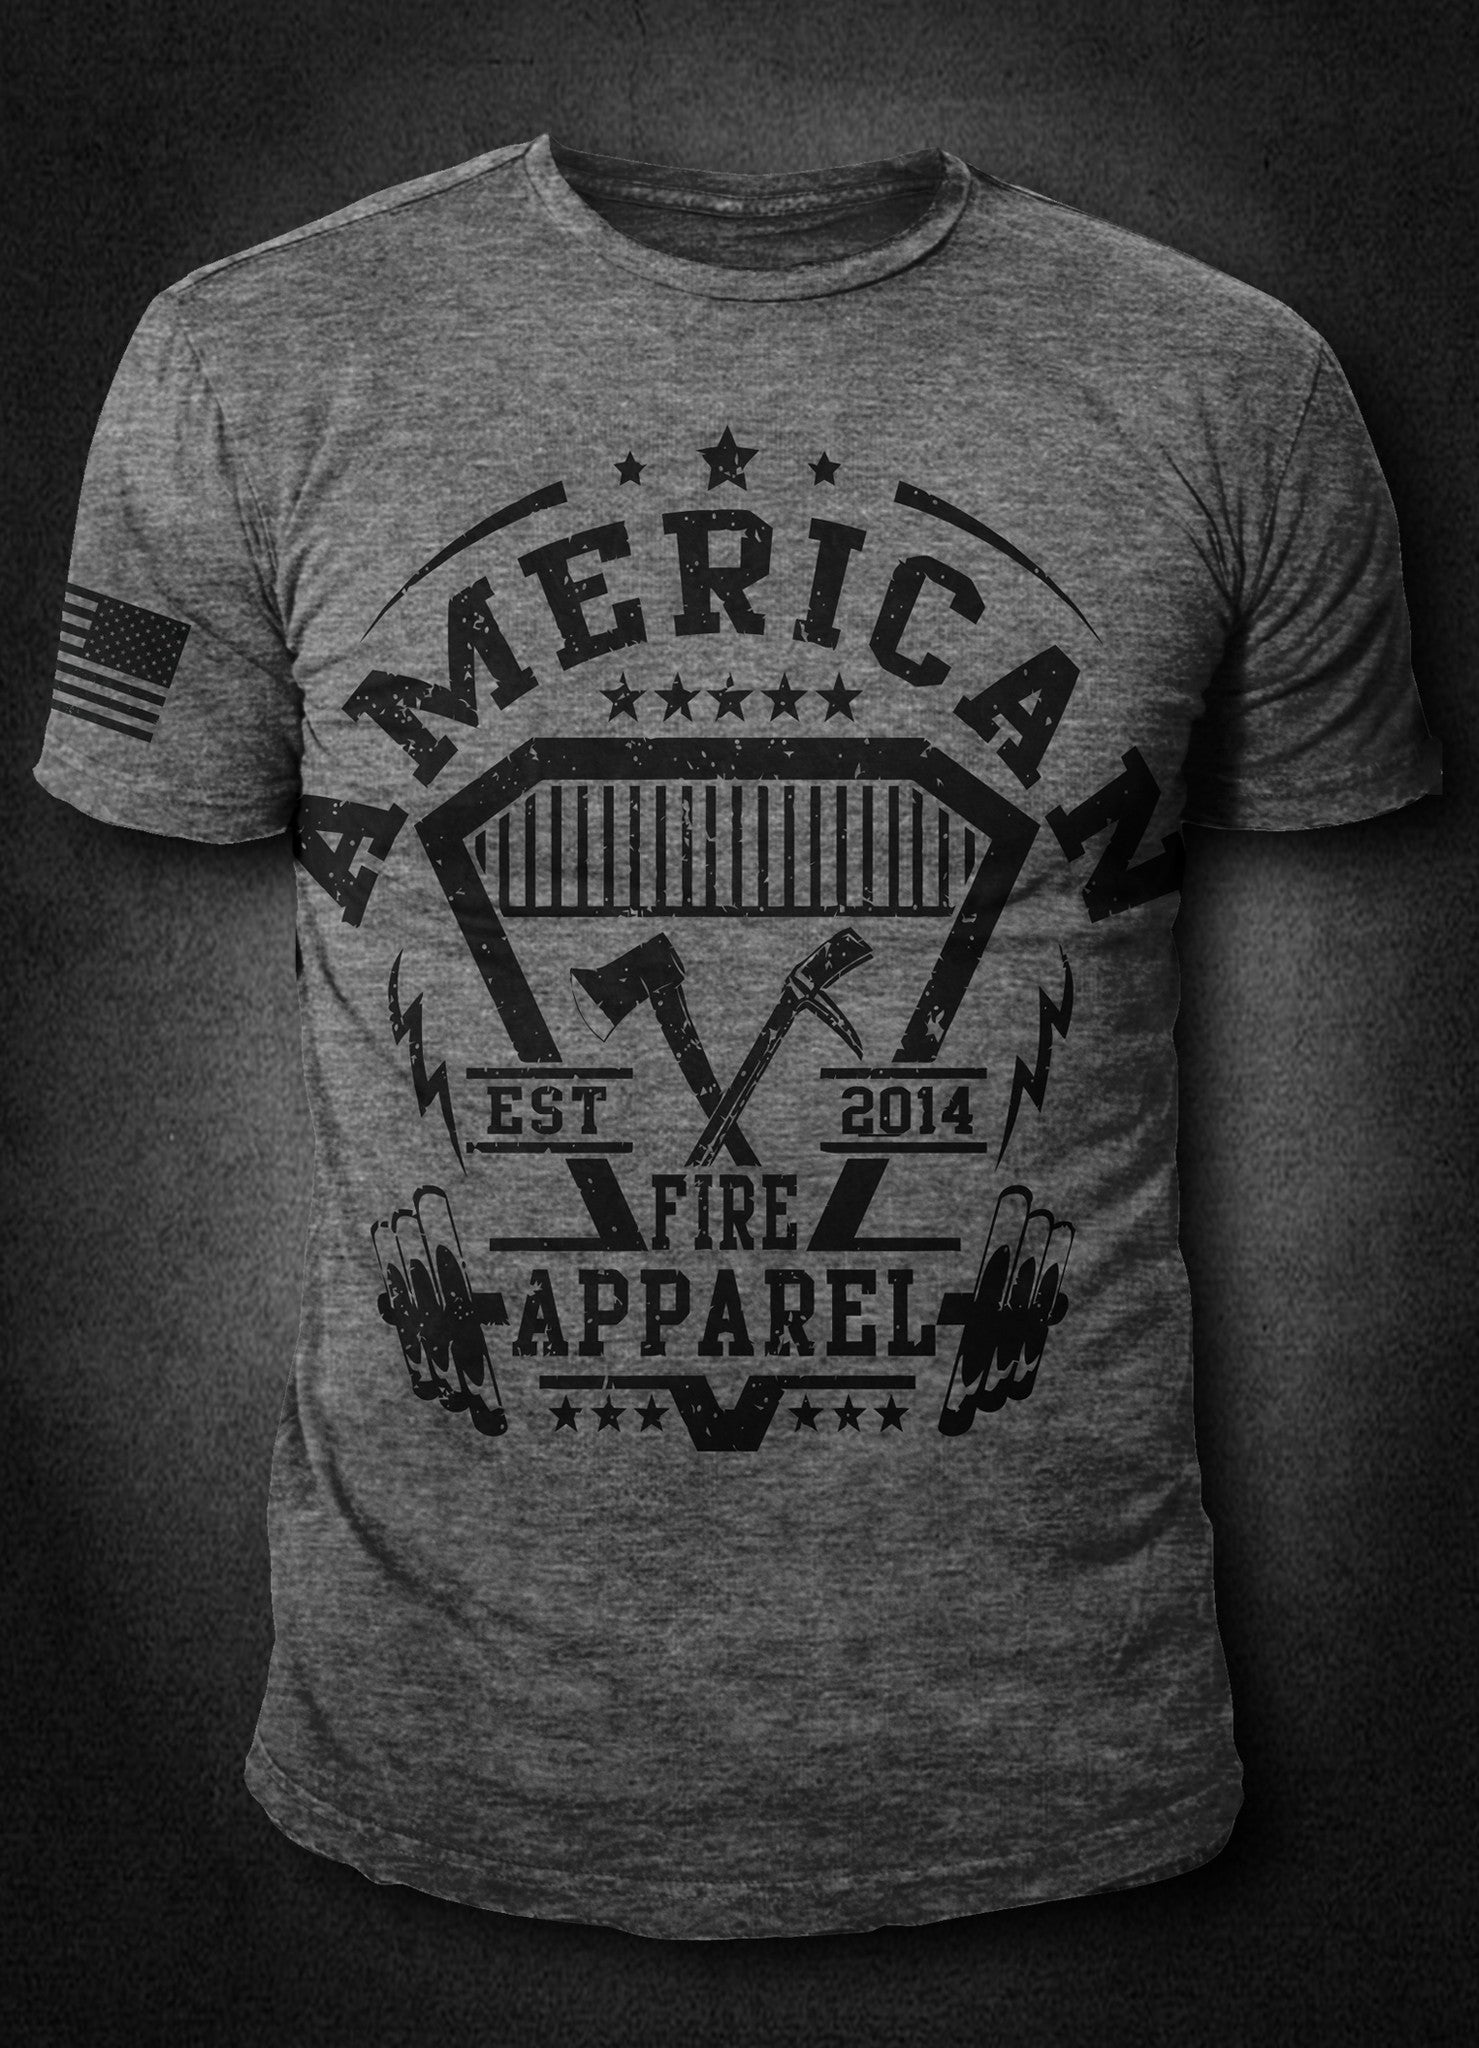 AFA Valor - AmericanFireApparel